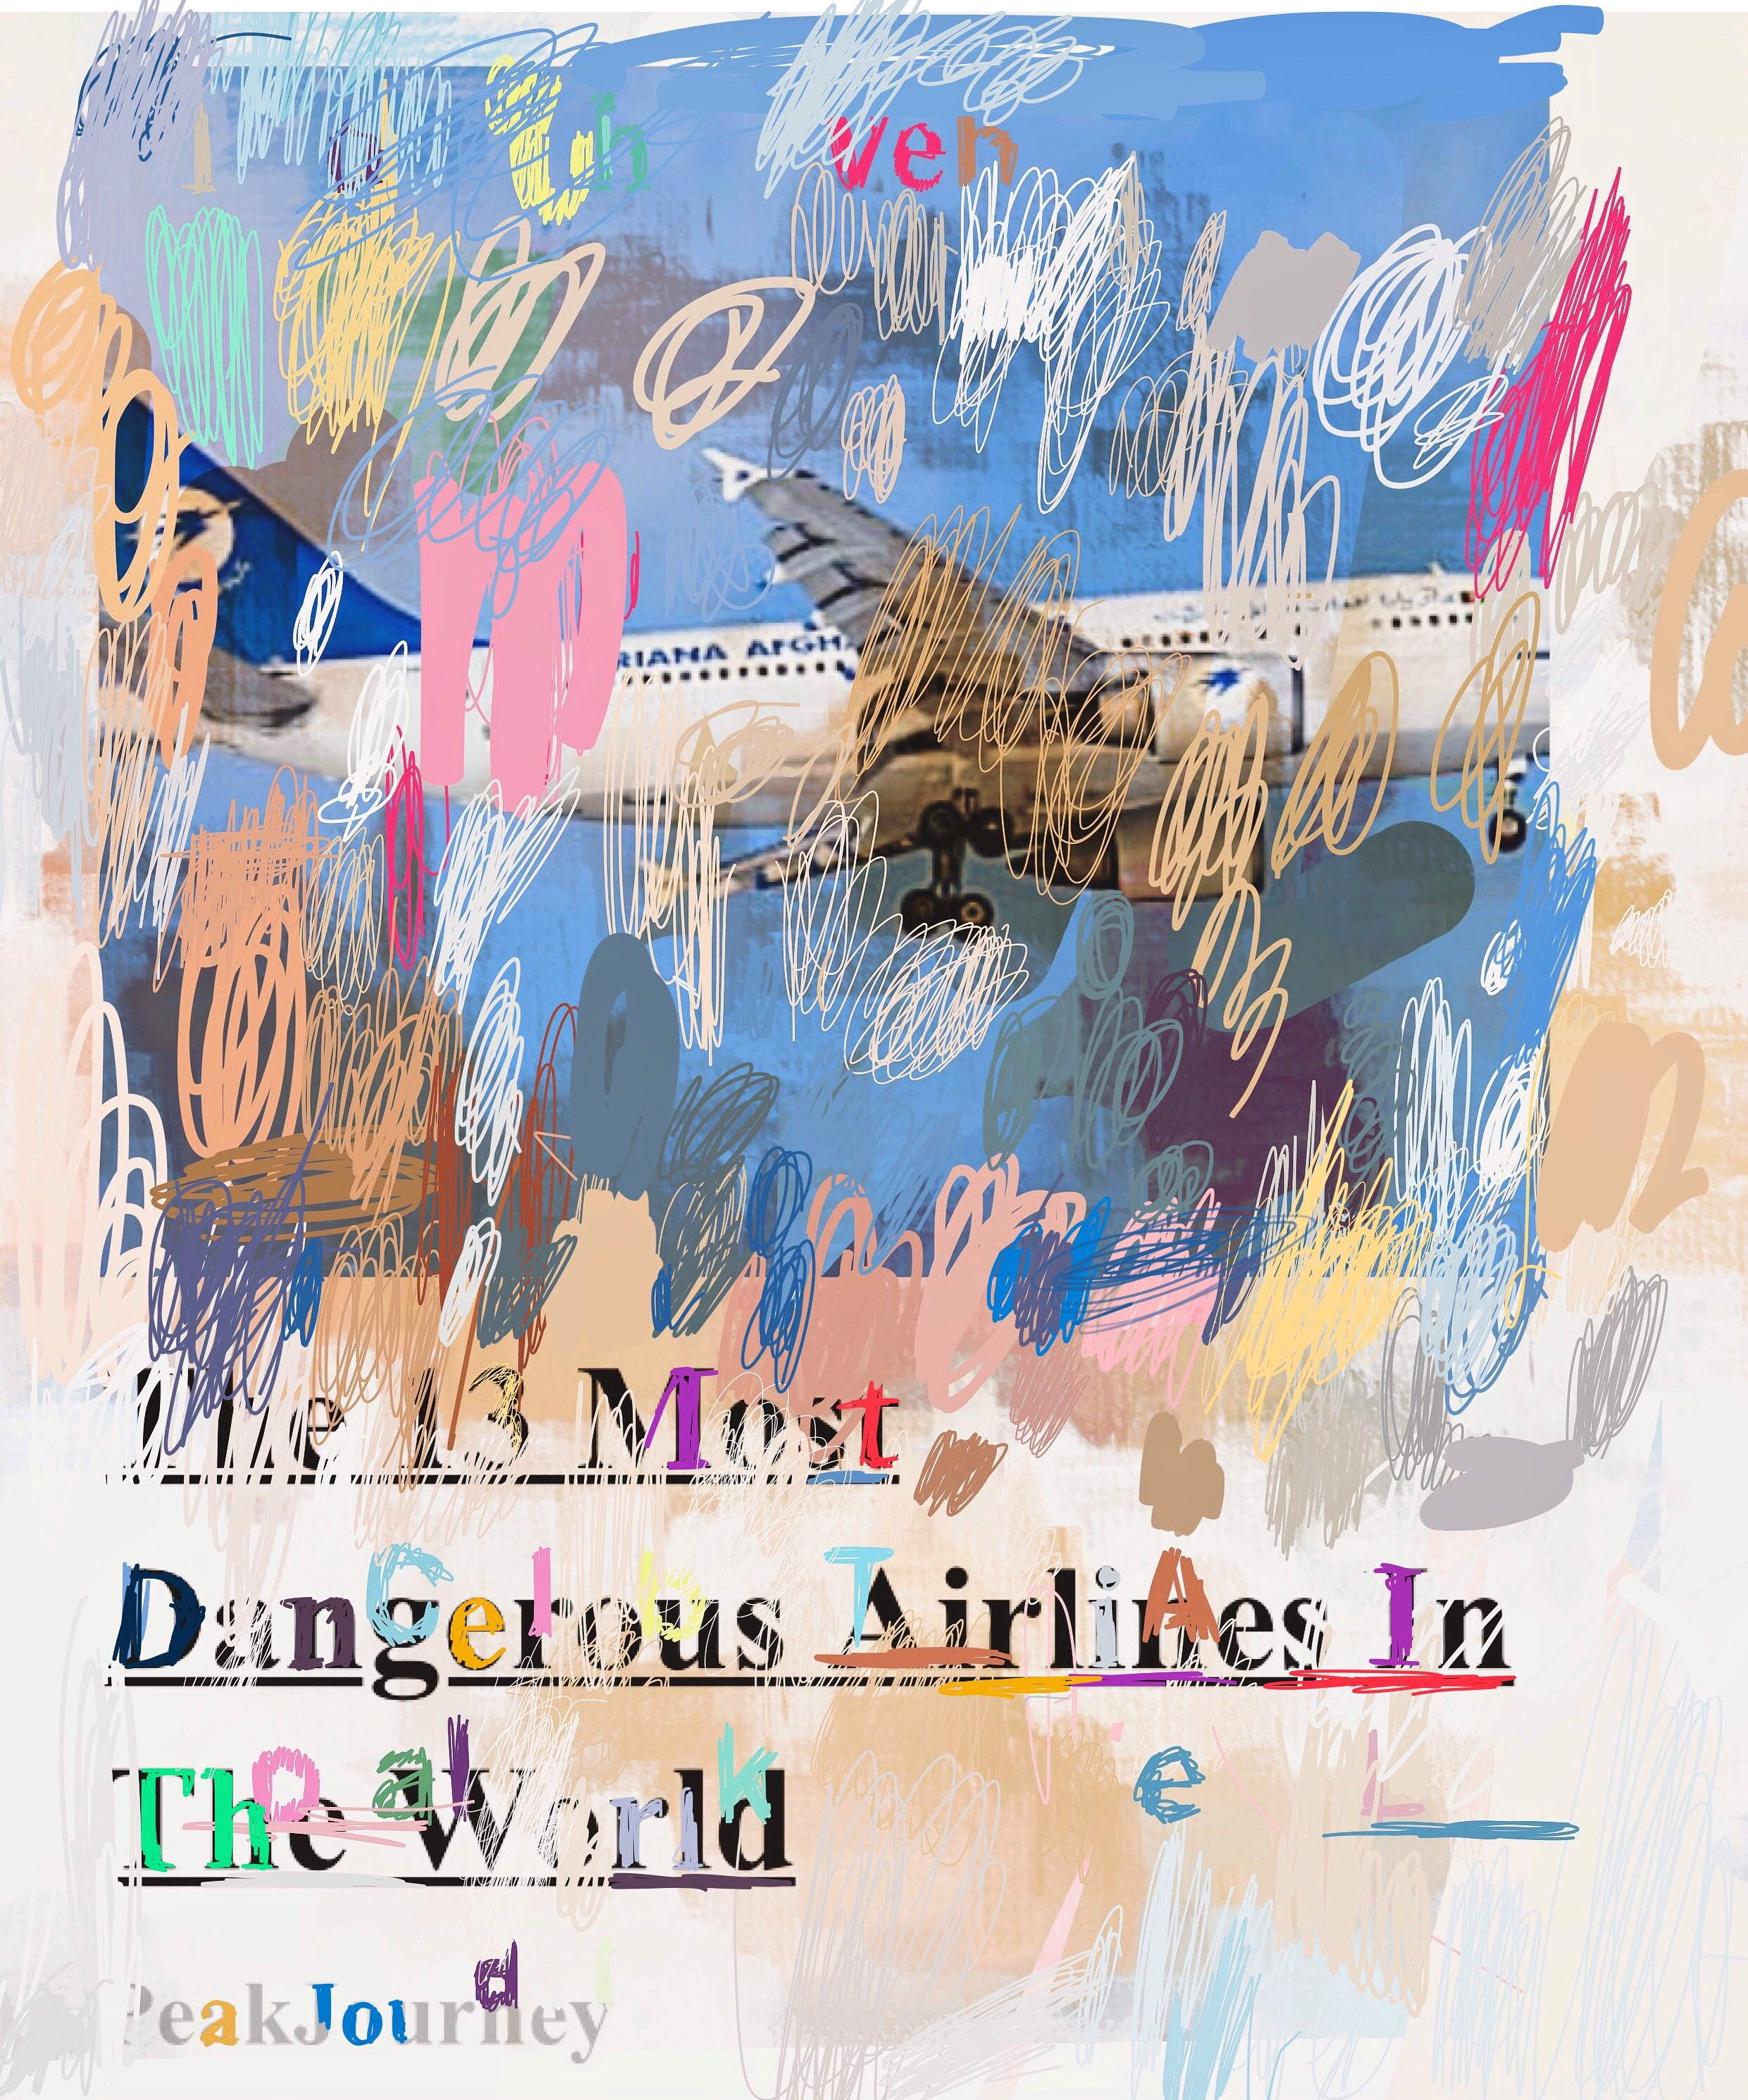 """""""The 13 Most Dangerous Airlines In The World"""", iPhone 6S, digital image, 2017."""